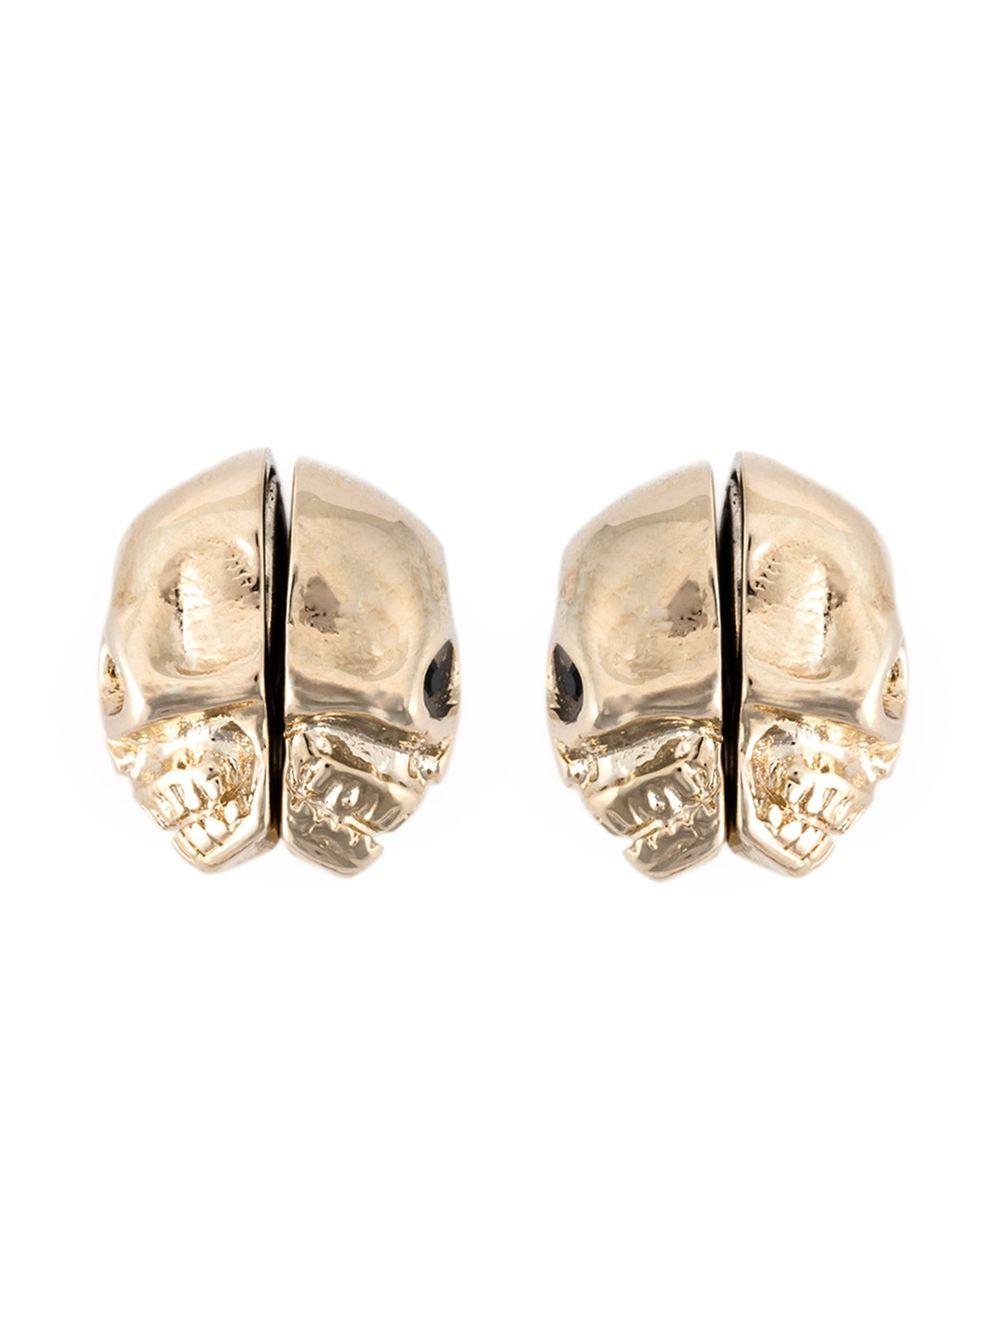 Givenchy Skulls Earrings in Metallics 9FjHKfVjMd